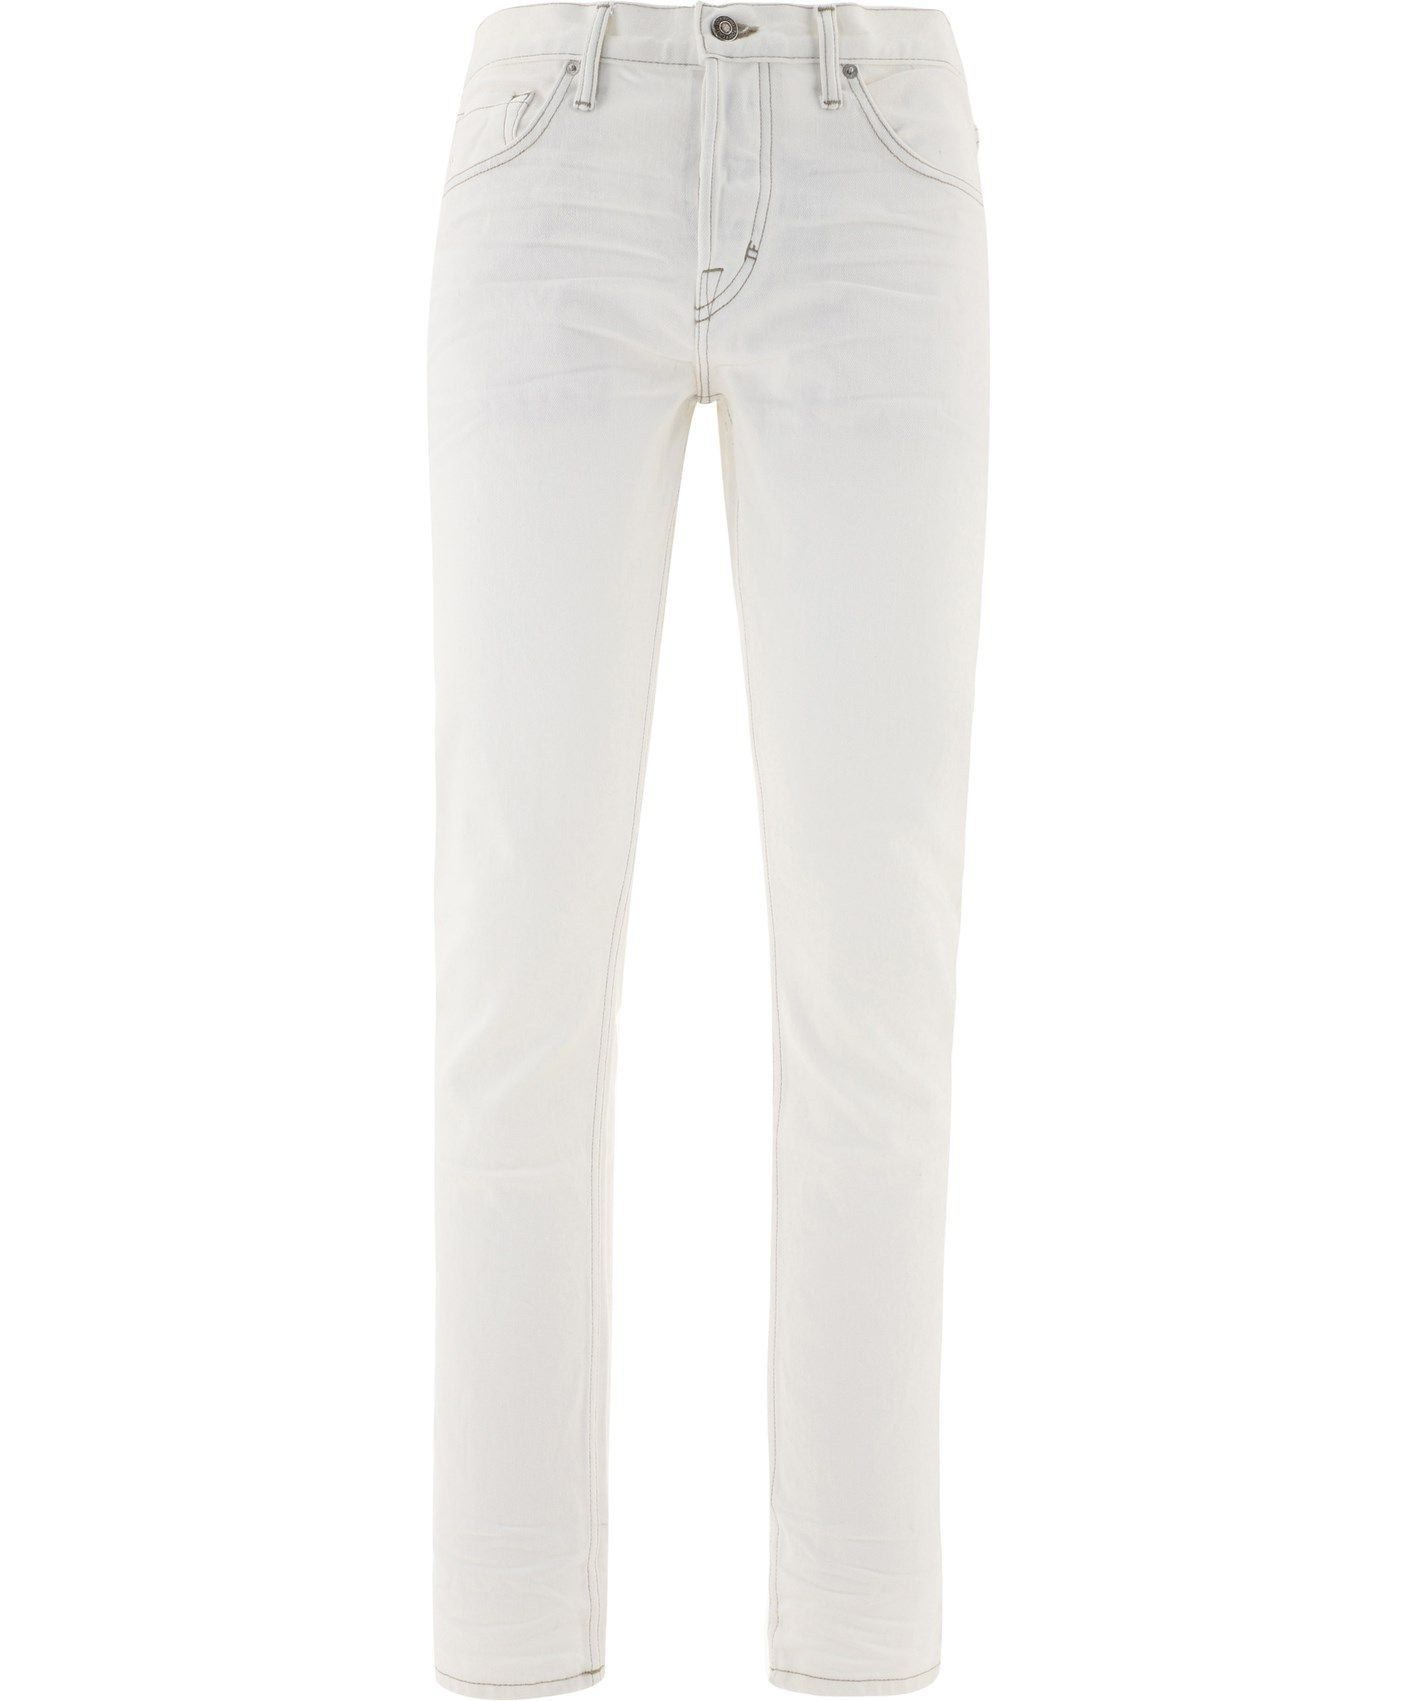 Tom Ford TOM FORD MEN'S WHITE COTTON JEANS